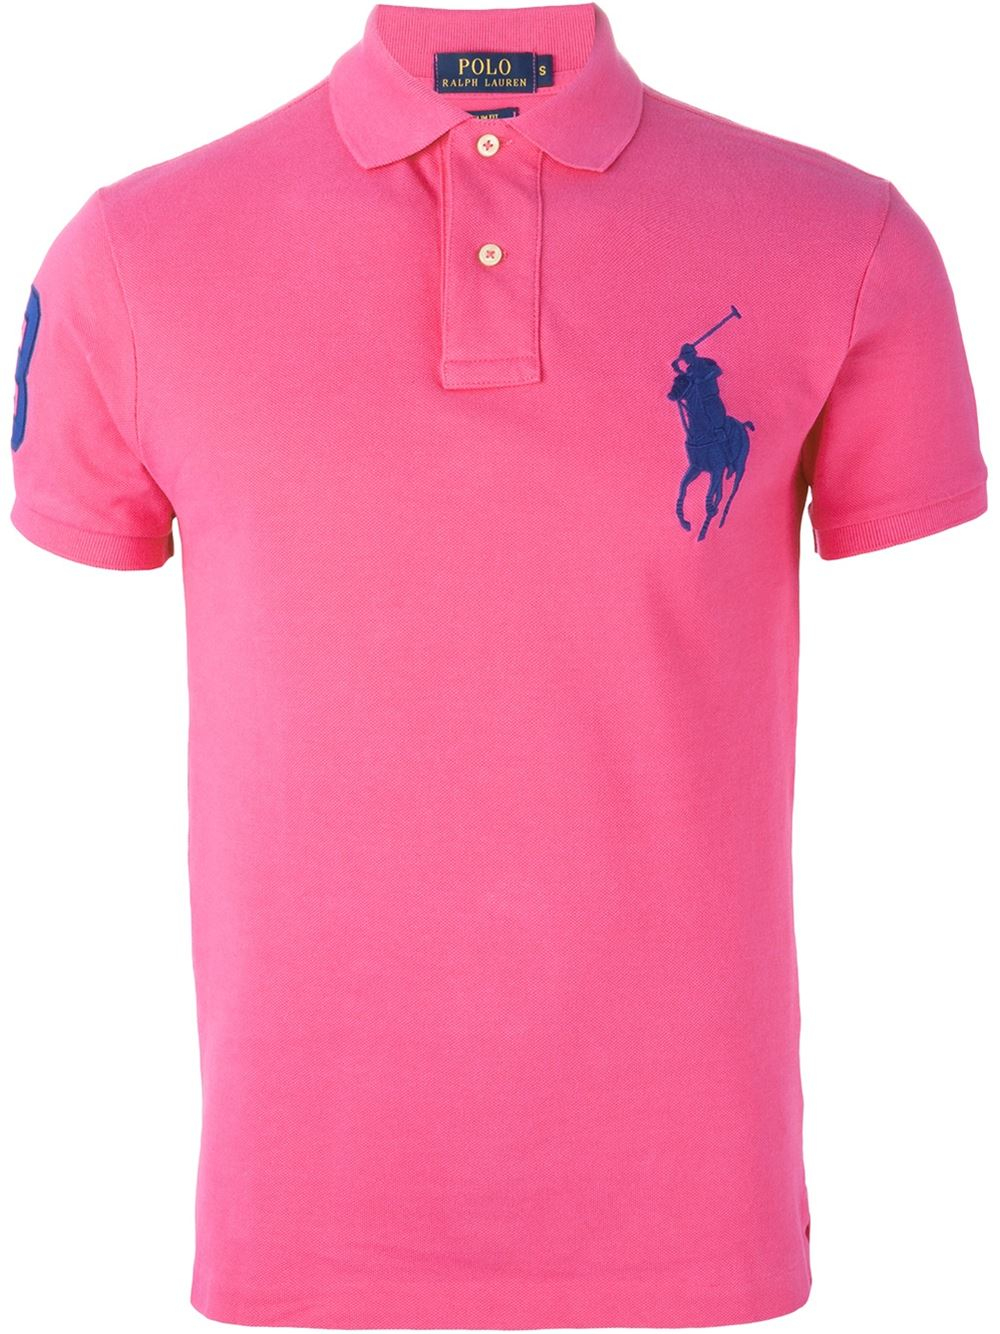 polo ralph lauren logo embroidered polo shirt in pink for men pink purple lyst. Black Bedroom Furniture Sets. Home Design Ideas